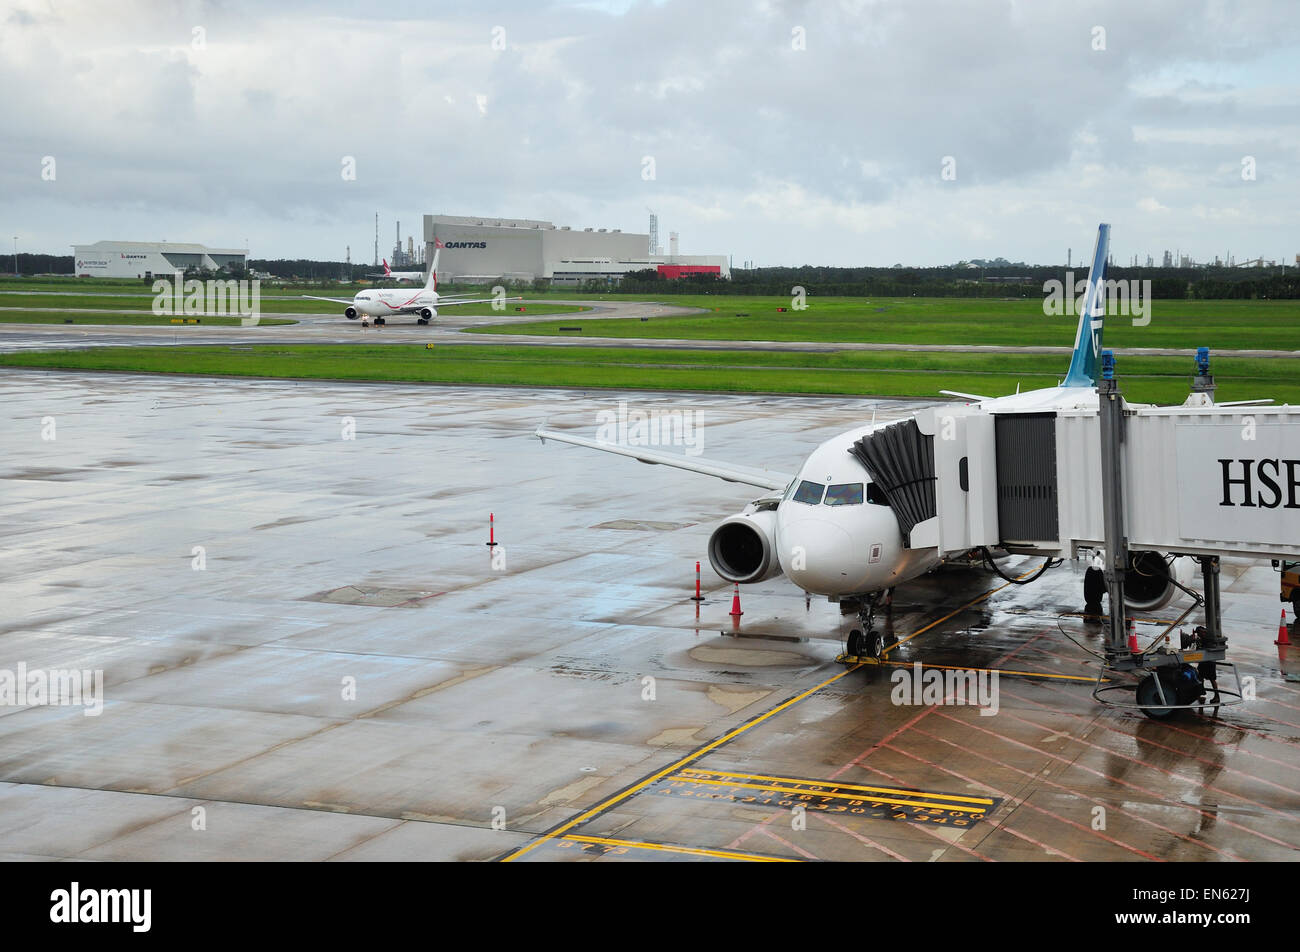 BRISBANE, AUSTRALIA: MARCH 8: commercial airliners on the tarmac on 8-3-2013 at Brisbane International Airport. - Stock Image